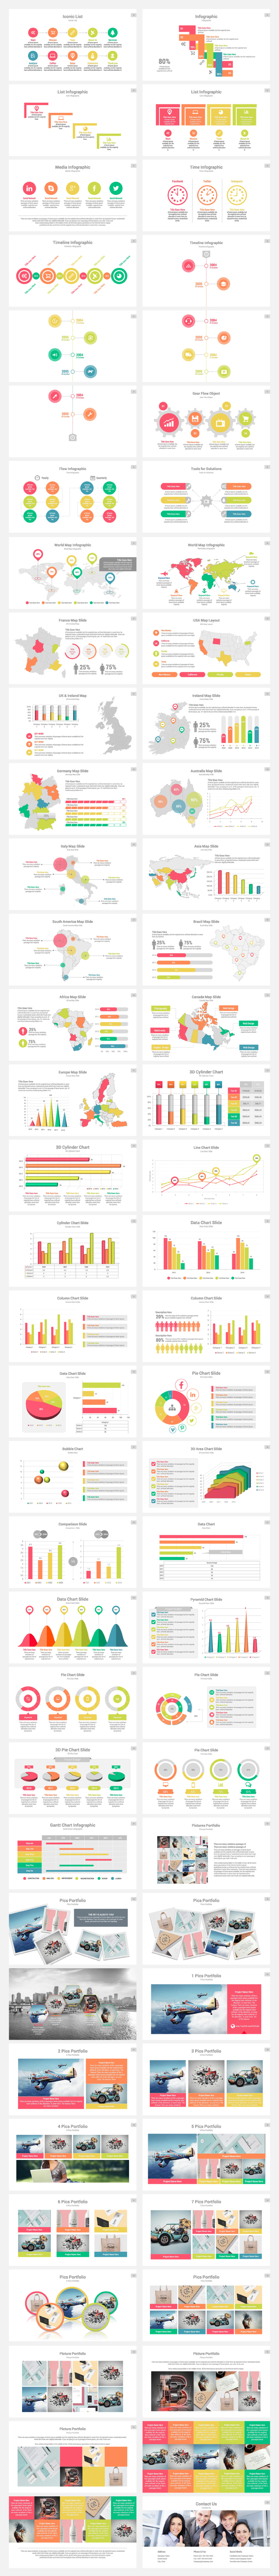 BizMax PowerPoint Presentation Template - 2